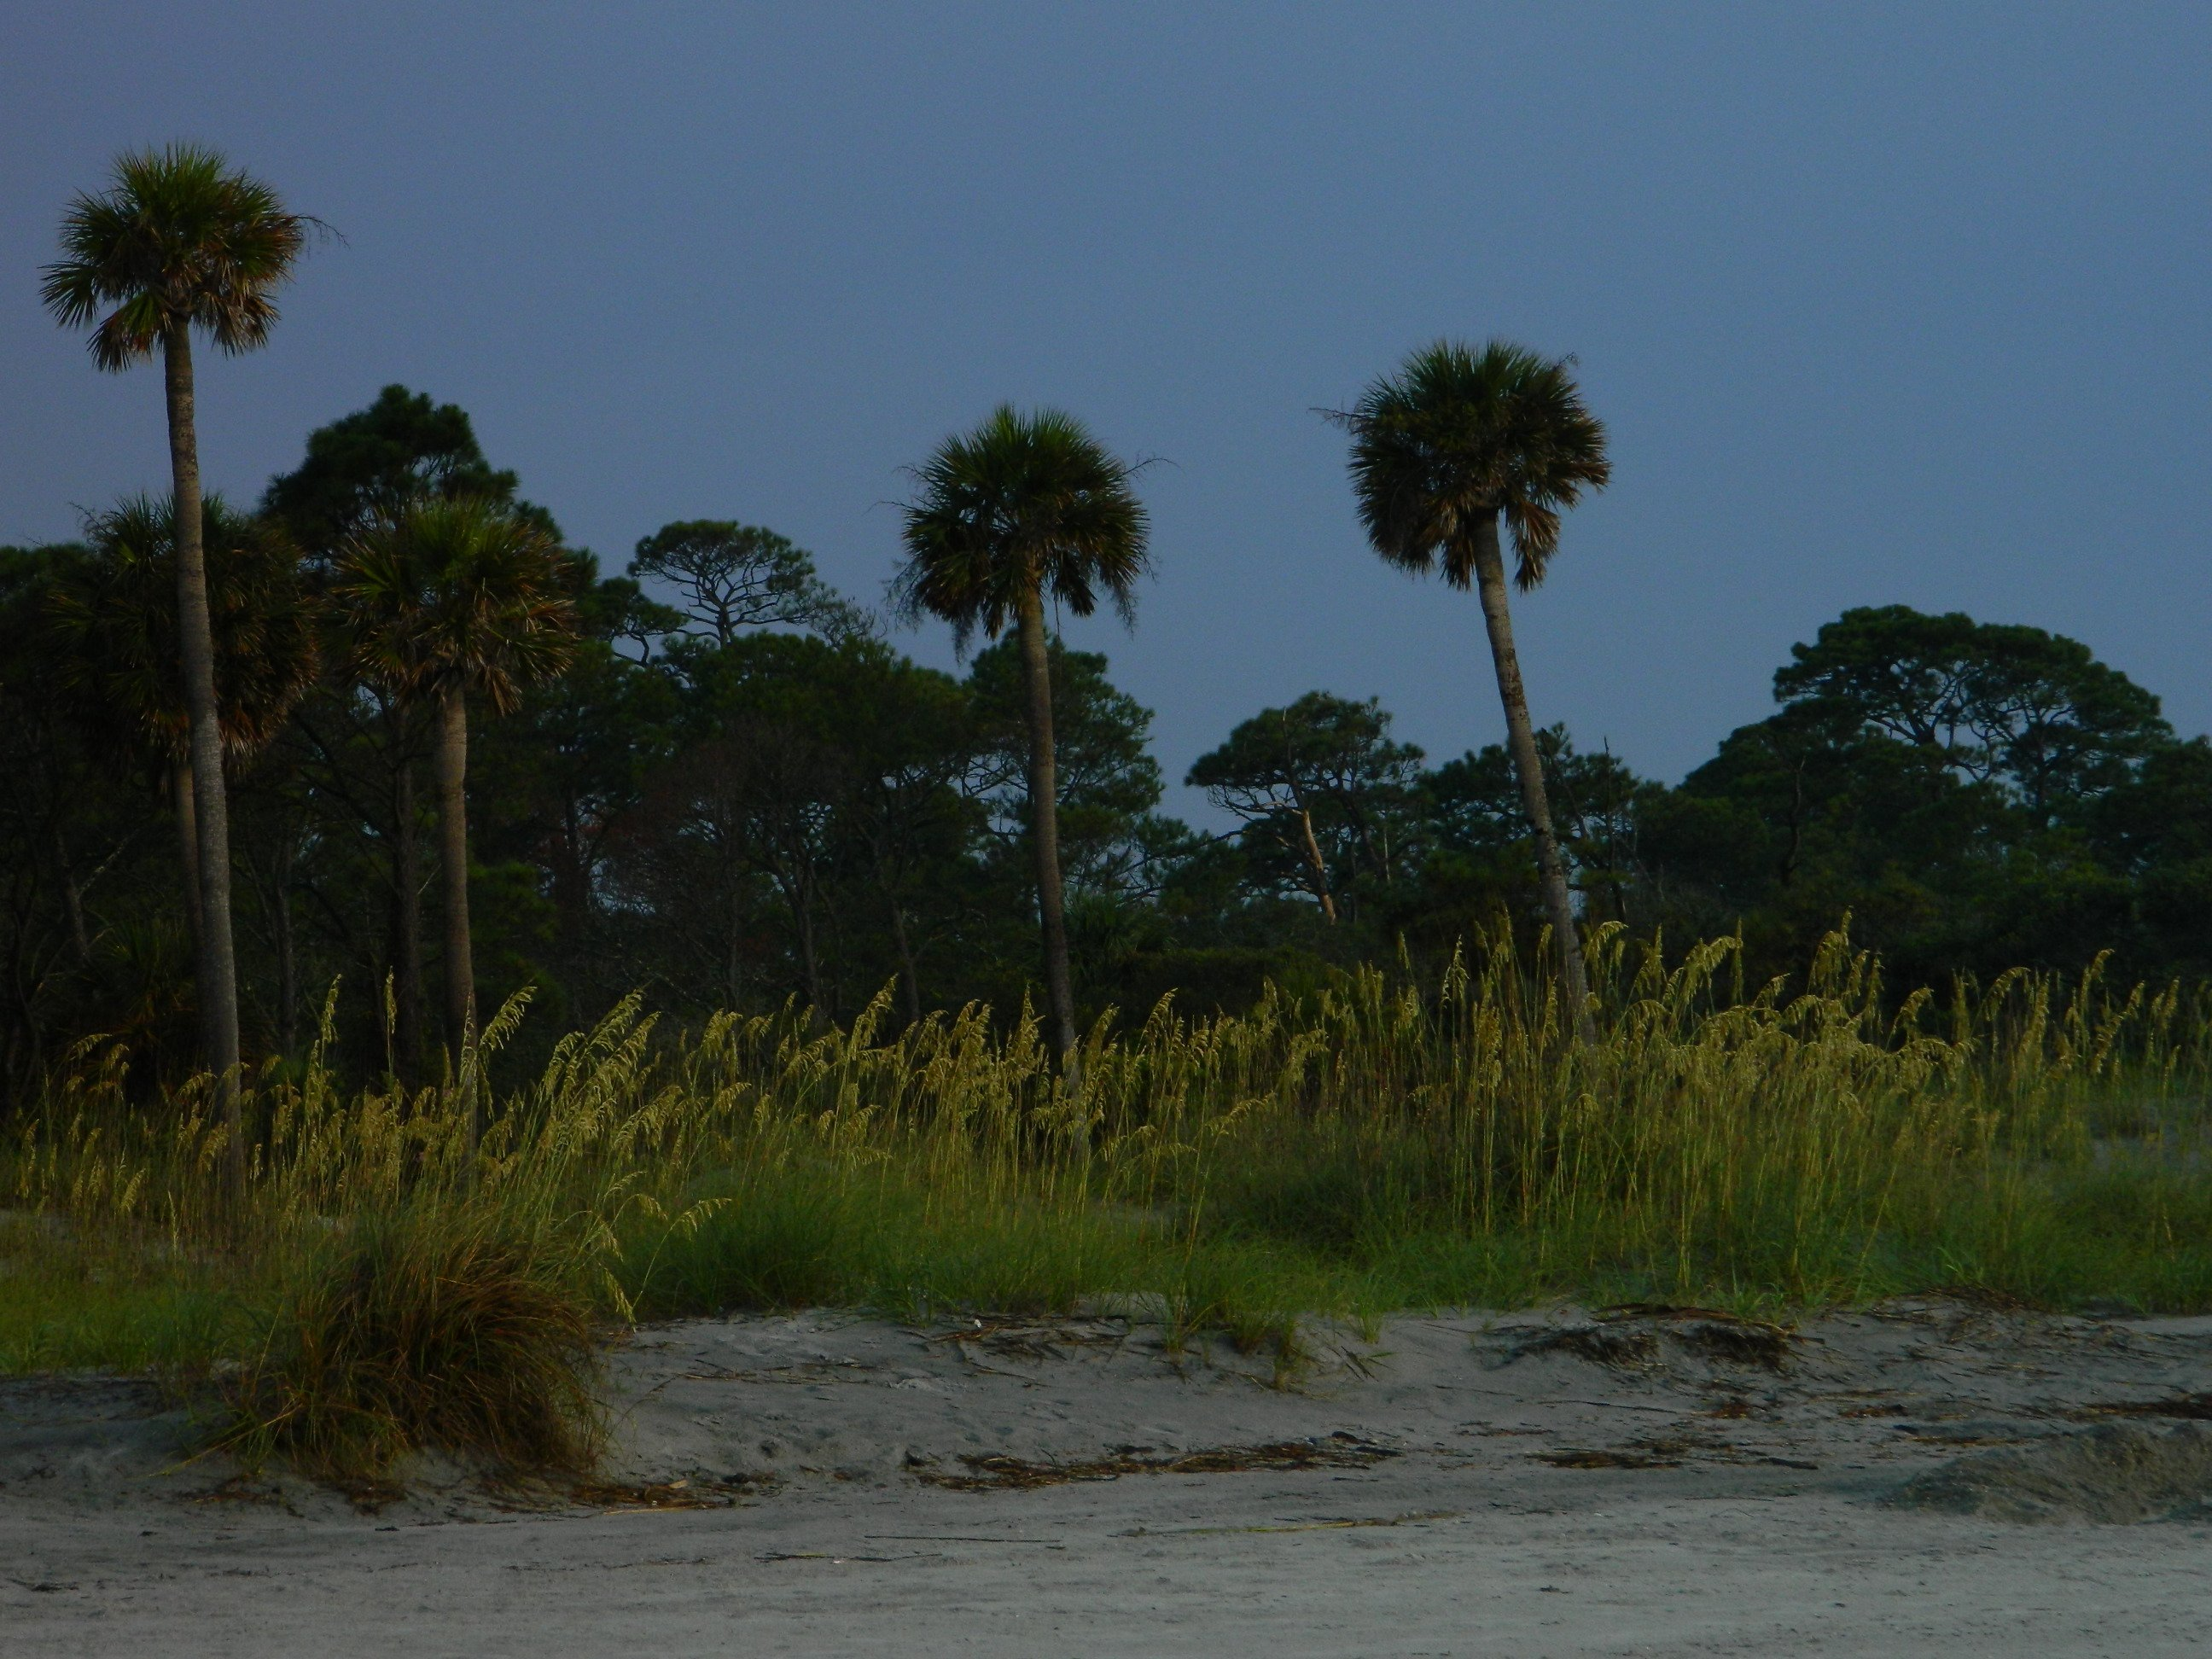 view of Hunting Island palm trees from the beach